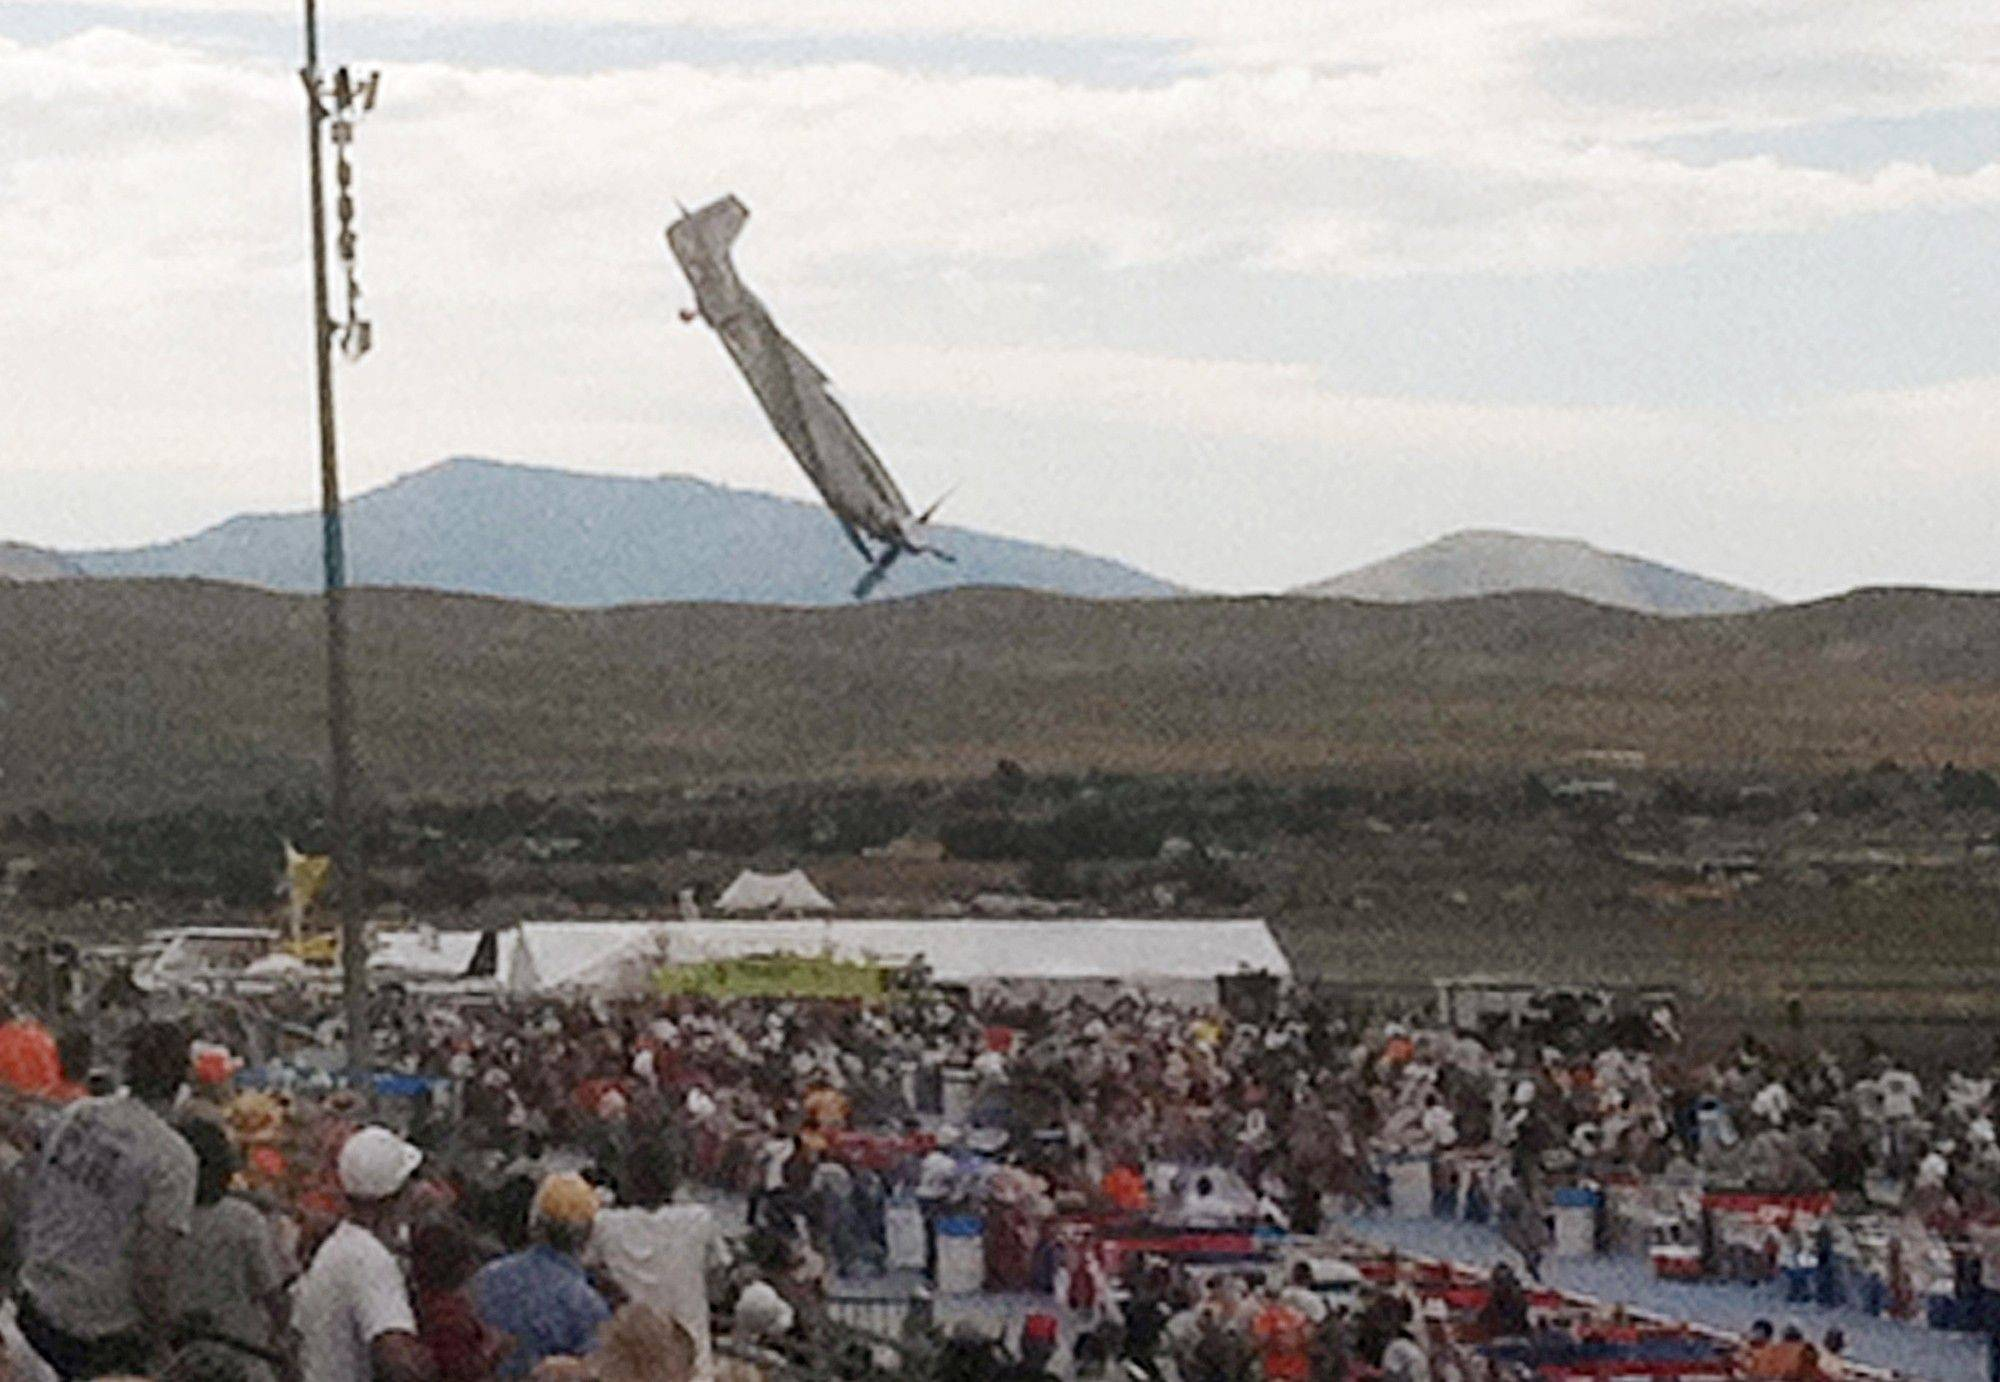 A P-51 Mustang airplane approaches the ground right before crashing during an air show Friday in Reno, Nev. The vintage World War II-era fighter plane piloted by Jimmy Leeward plunged into the grandstands during the popular annual air show.